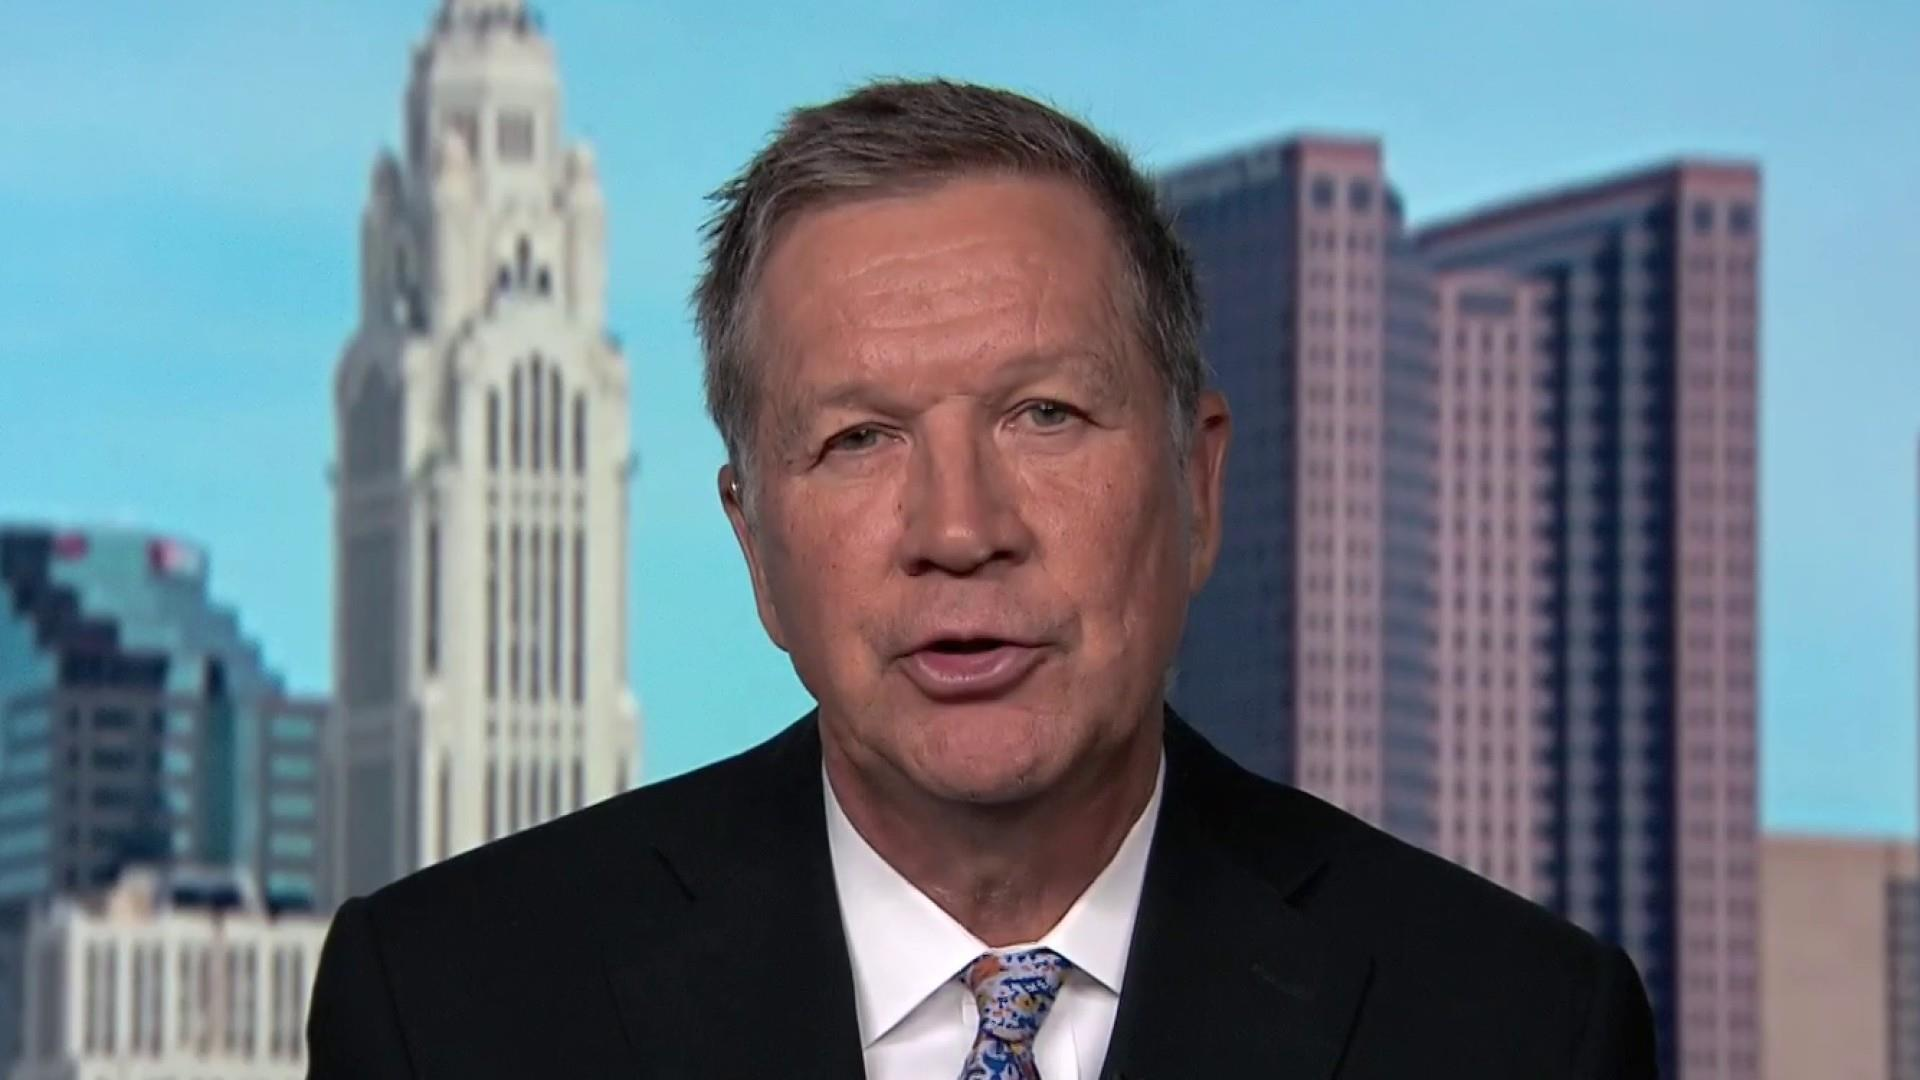 Gov. Kasich: Put the people first and 'do a little painful giving'